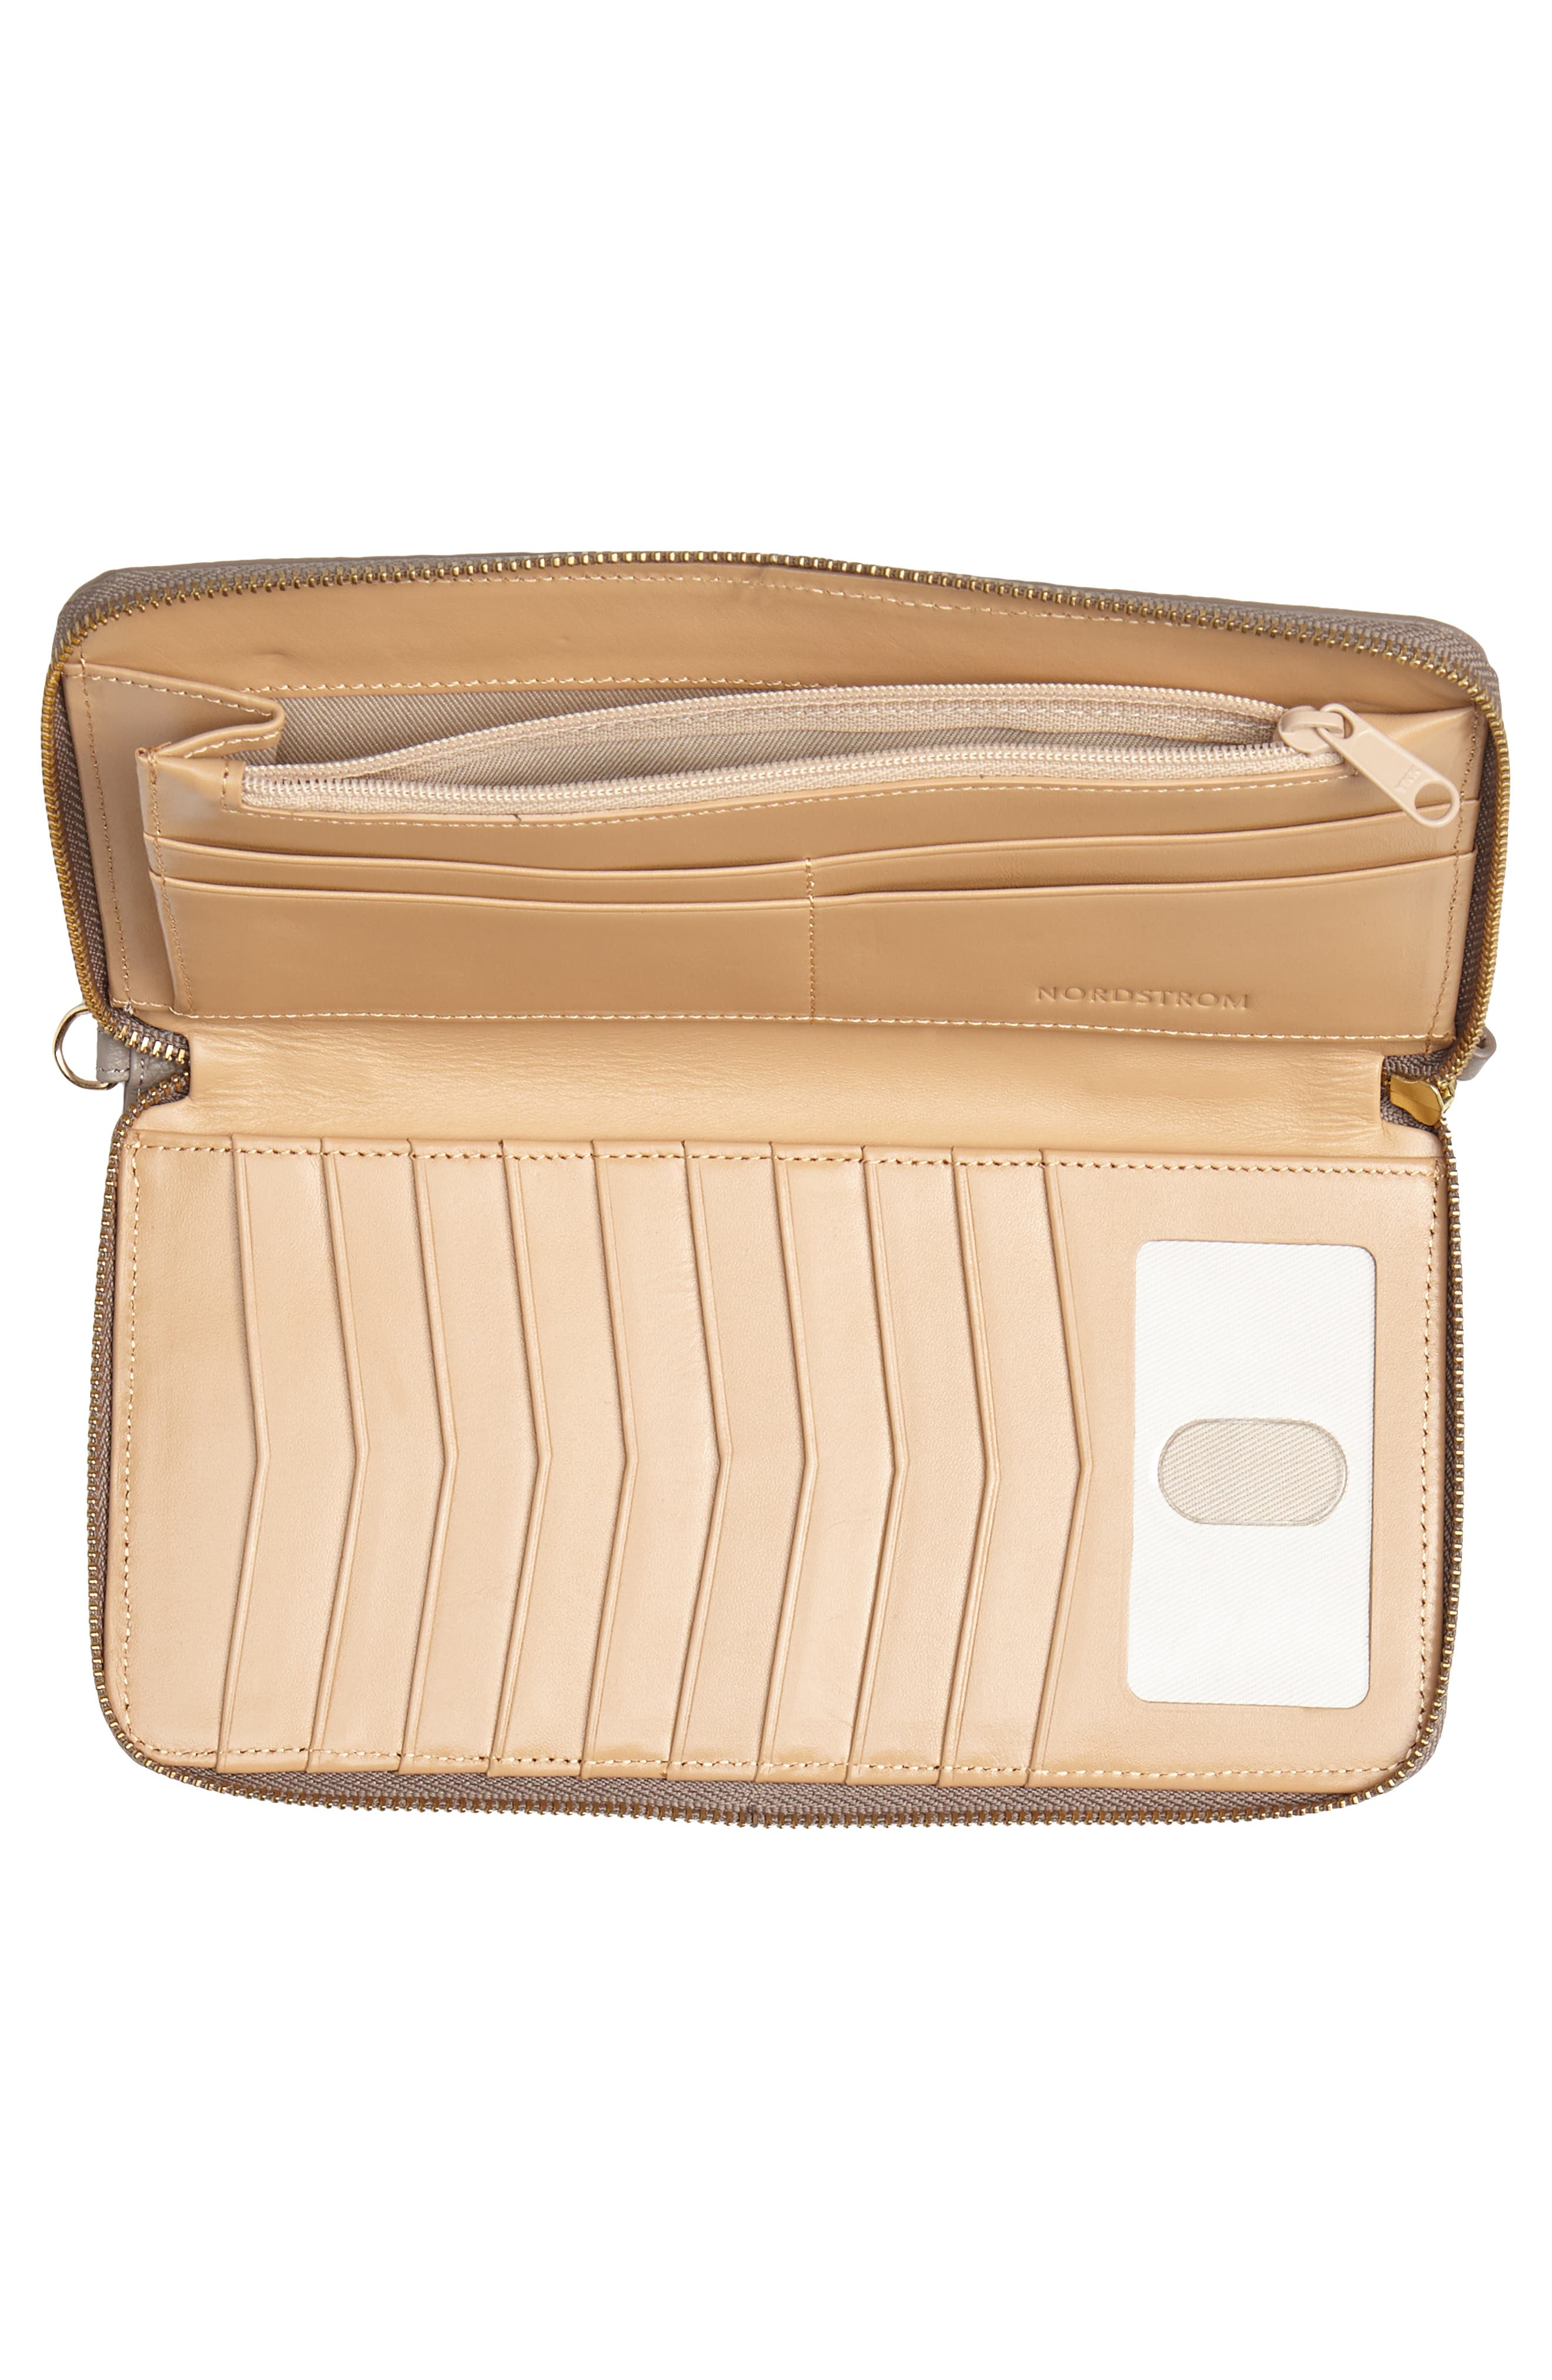 NORDSTROM, Zip Around Leather Continental Wallet, Alternate thumbnail 4, color, GREY TAUPE